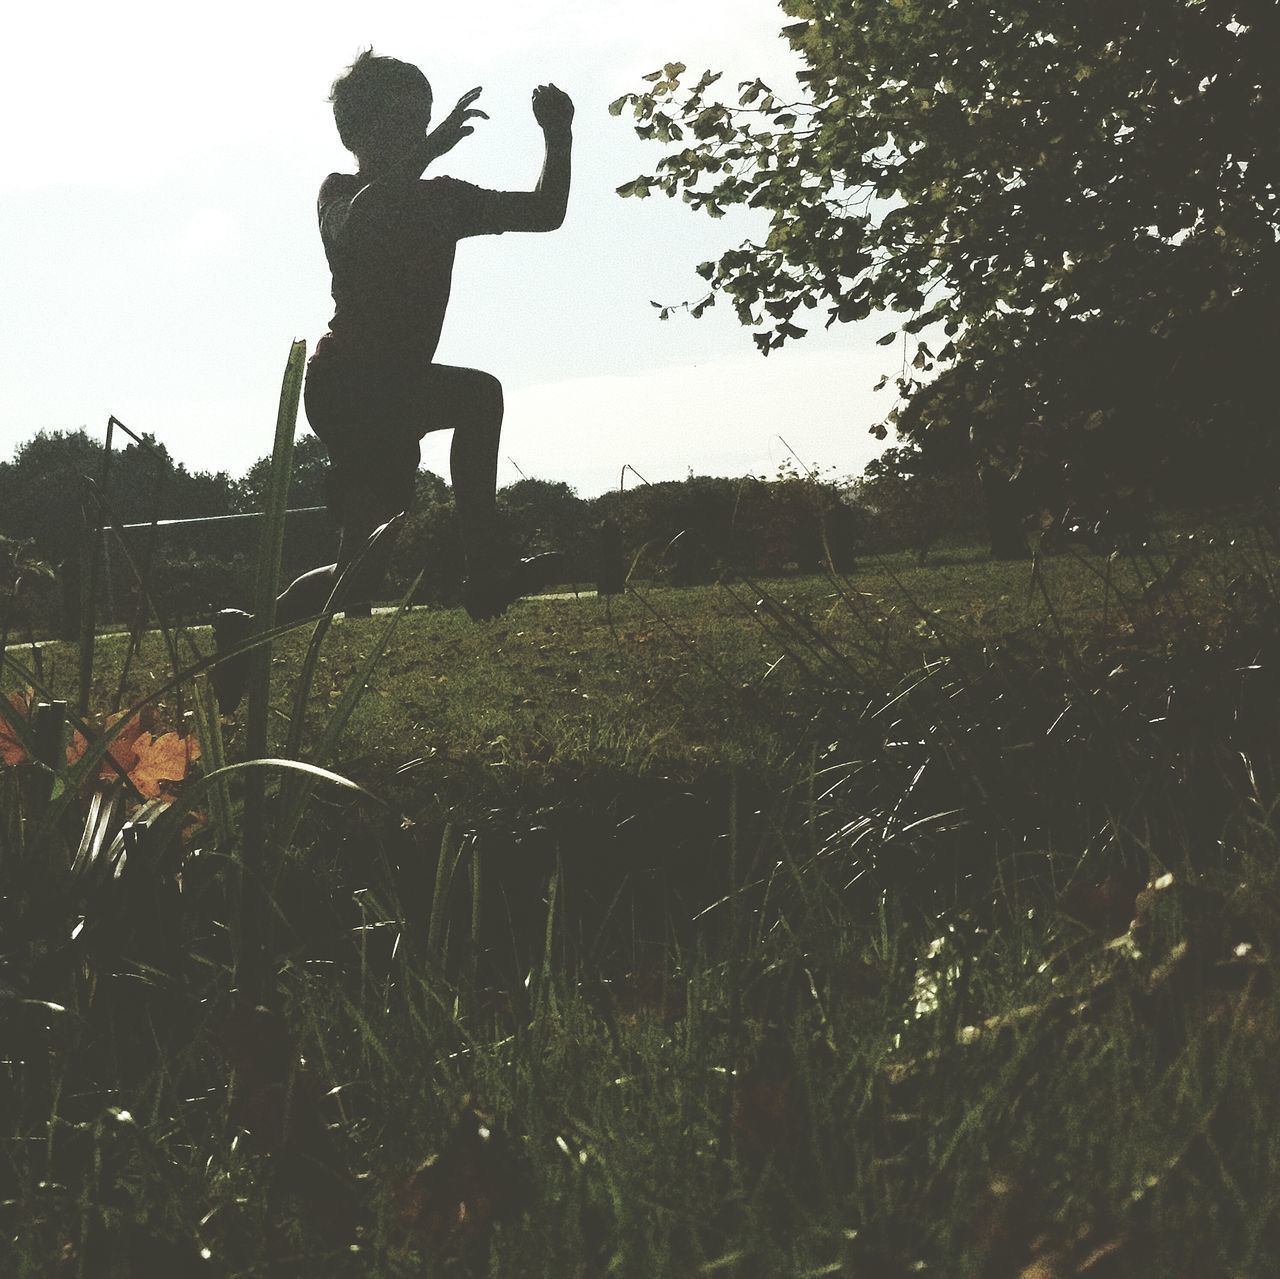 grass, field, silhouette, full length, tree, growth, outdoors, landscape, day, one person, nature, men, real people, sky, people